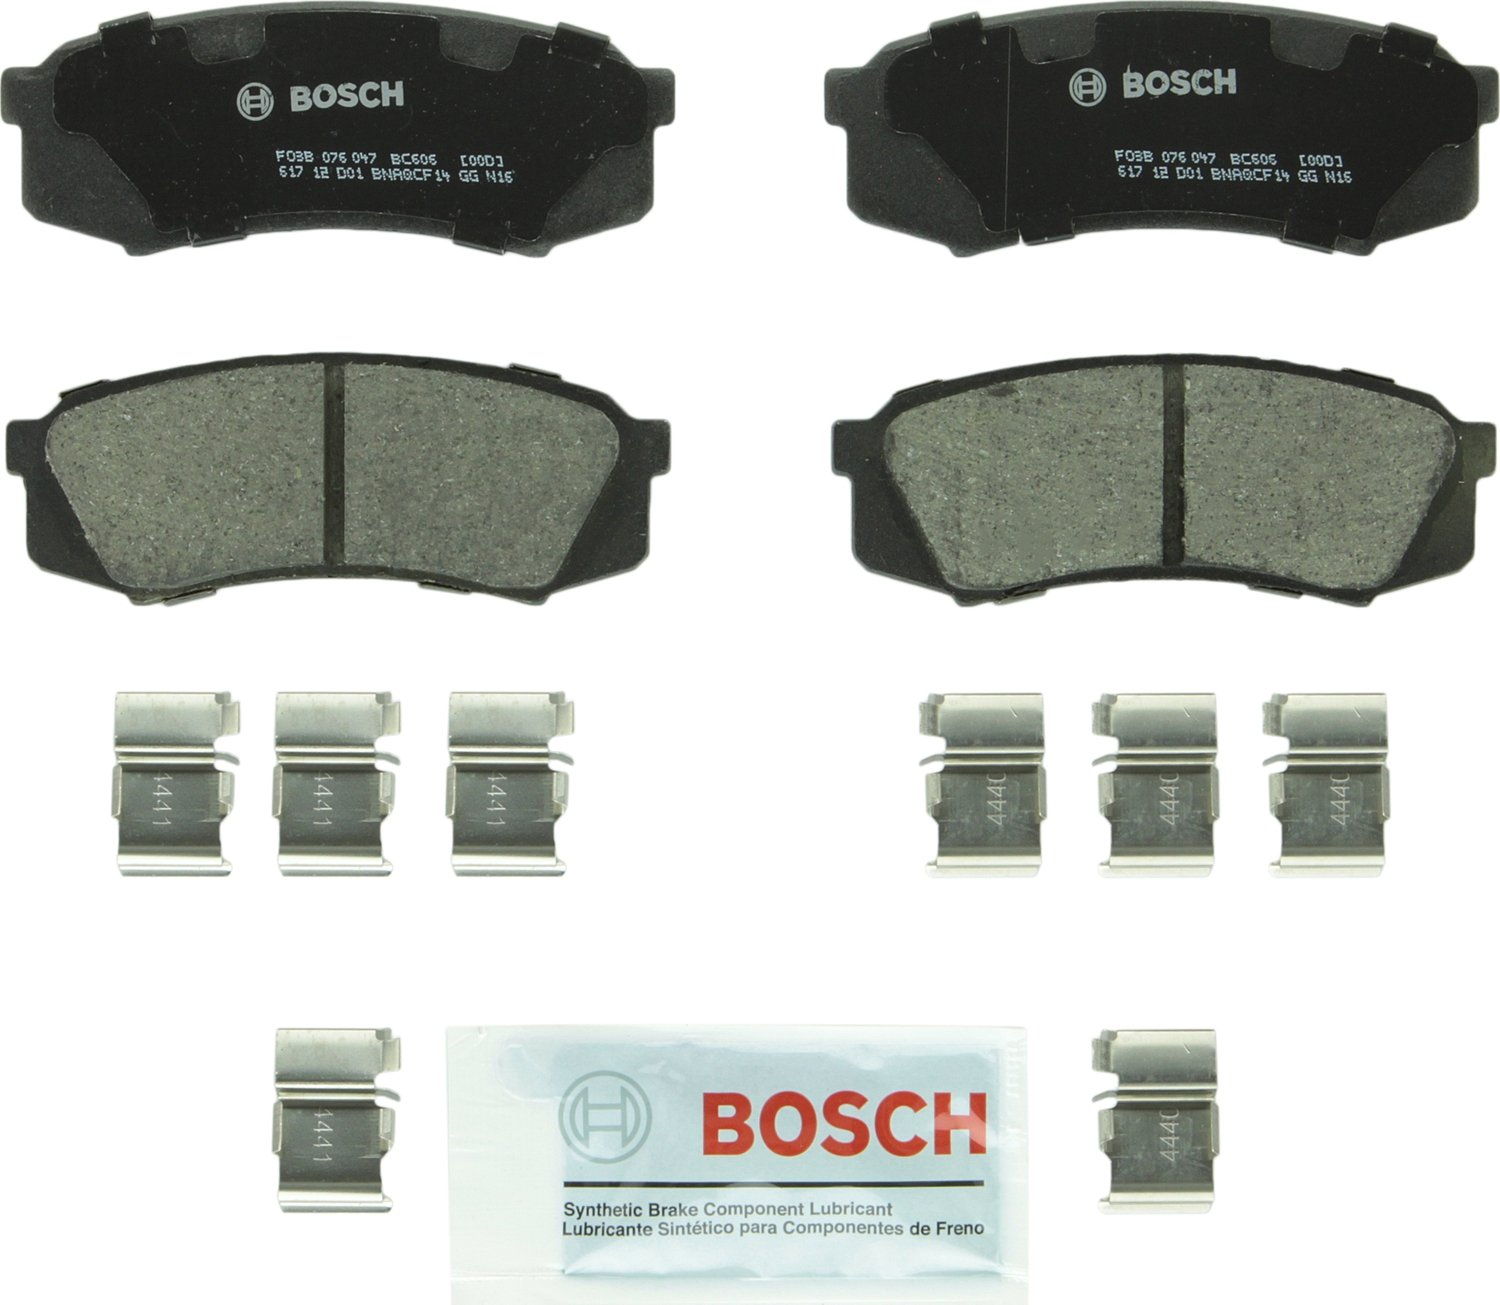 Bosch BC606 QuietCast Premium Ceramic Rear Disc Brake Pad Set by Bosch